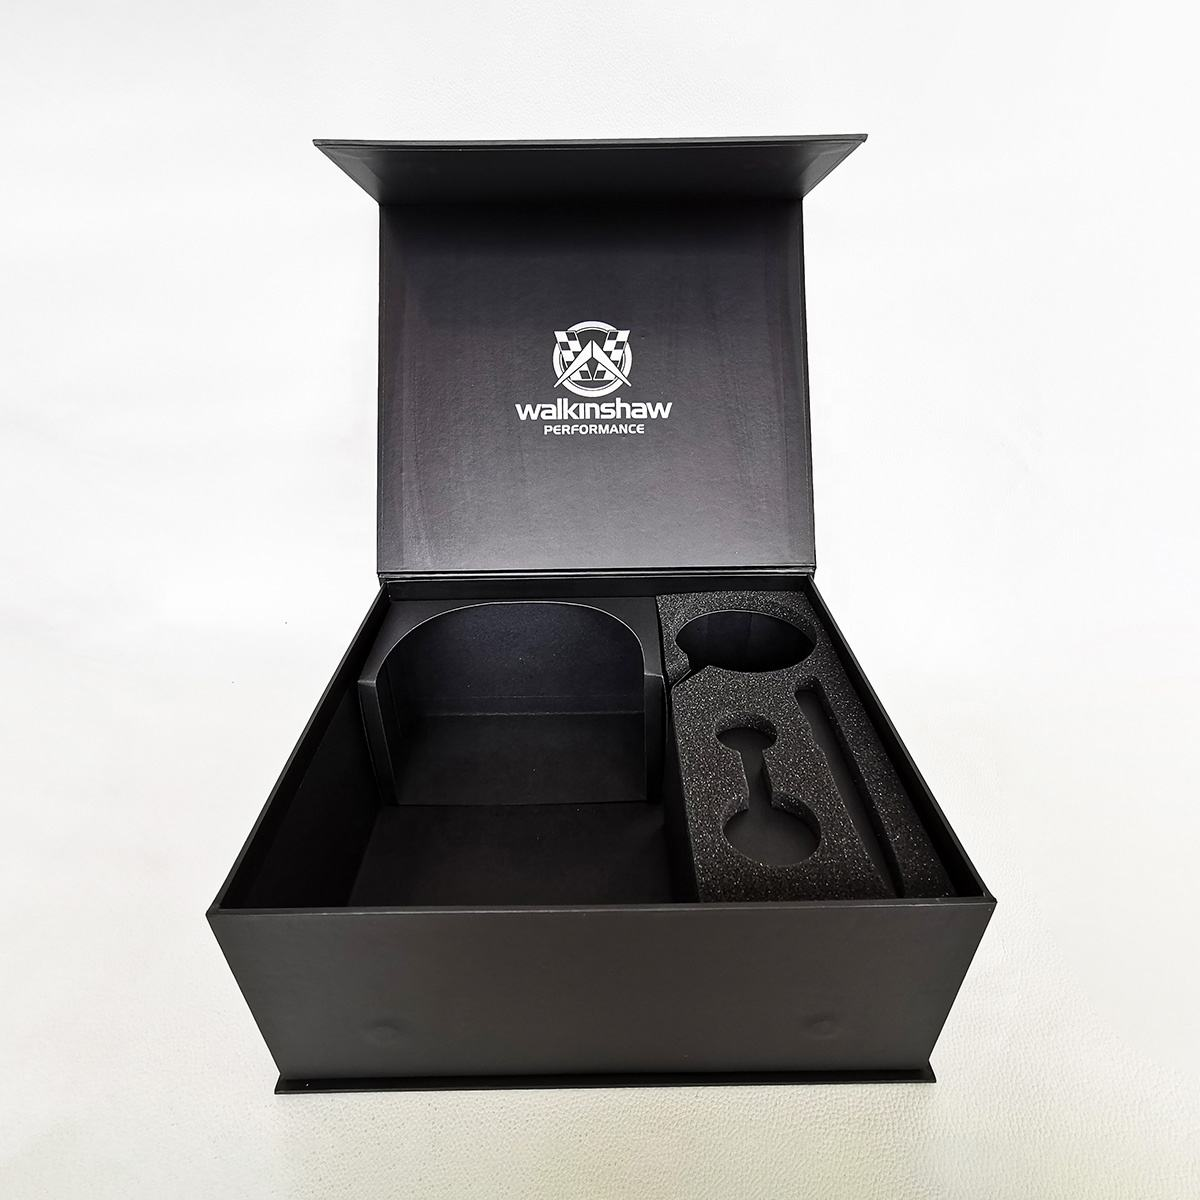 Paper cardboard Luxury book shape gift packaging box for car key or key ring packaging box